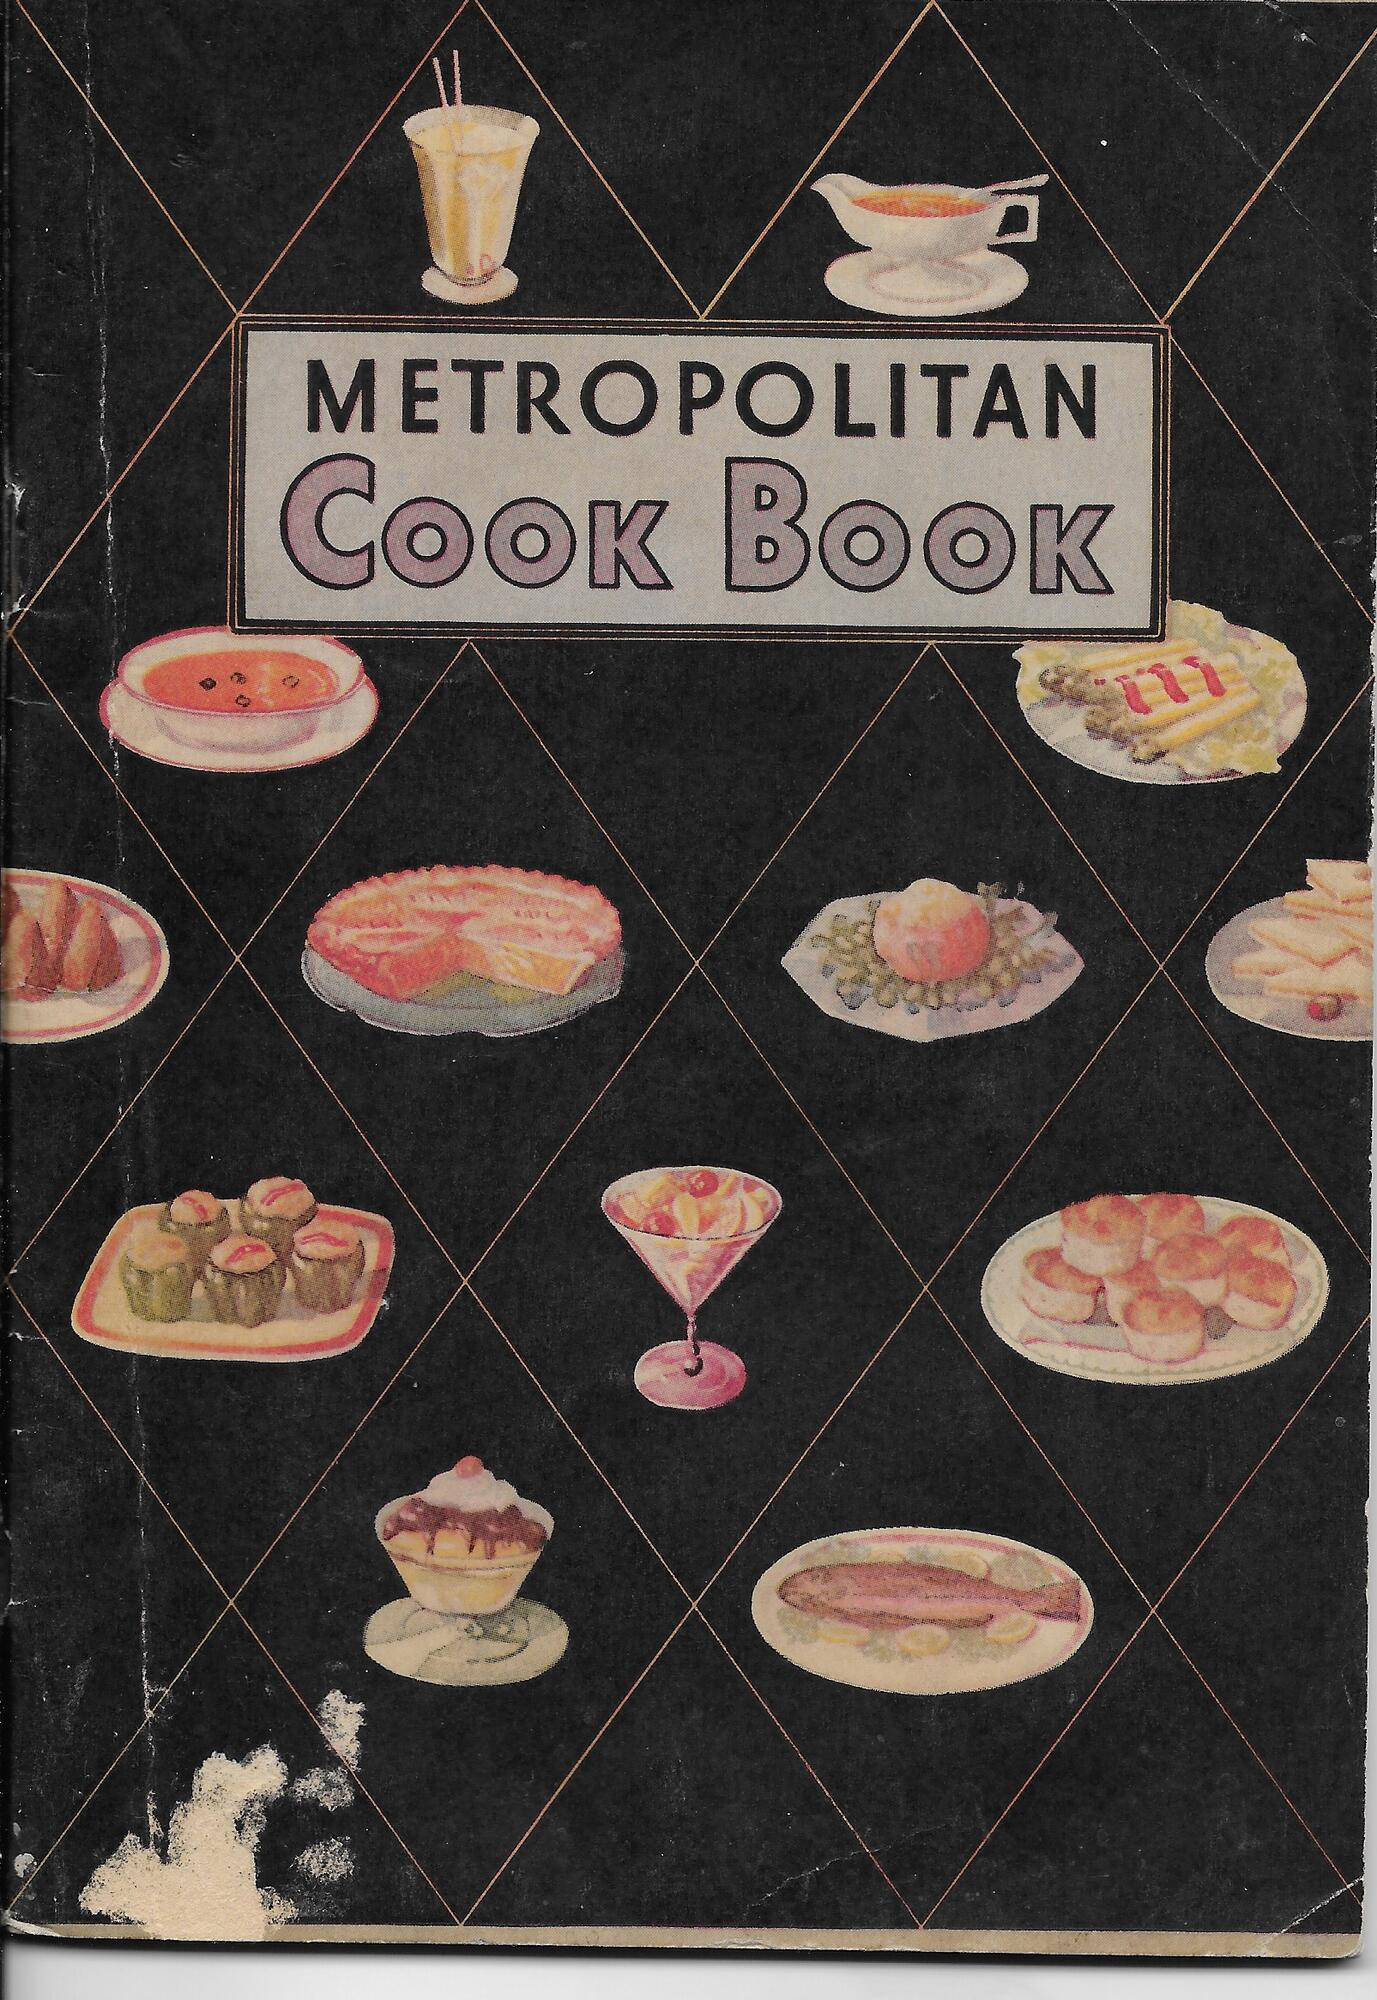 The Metropolitan Cook Book.jpeg